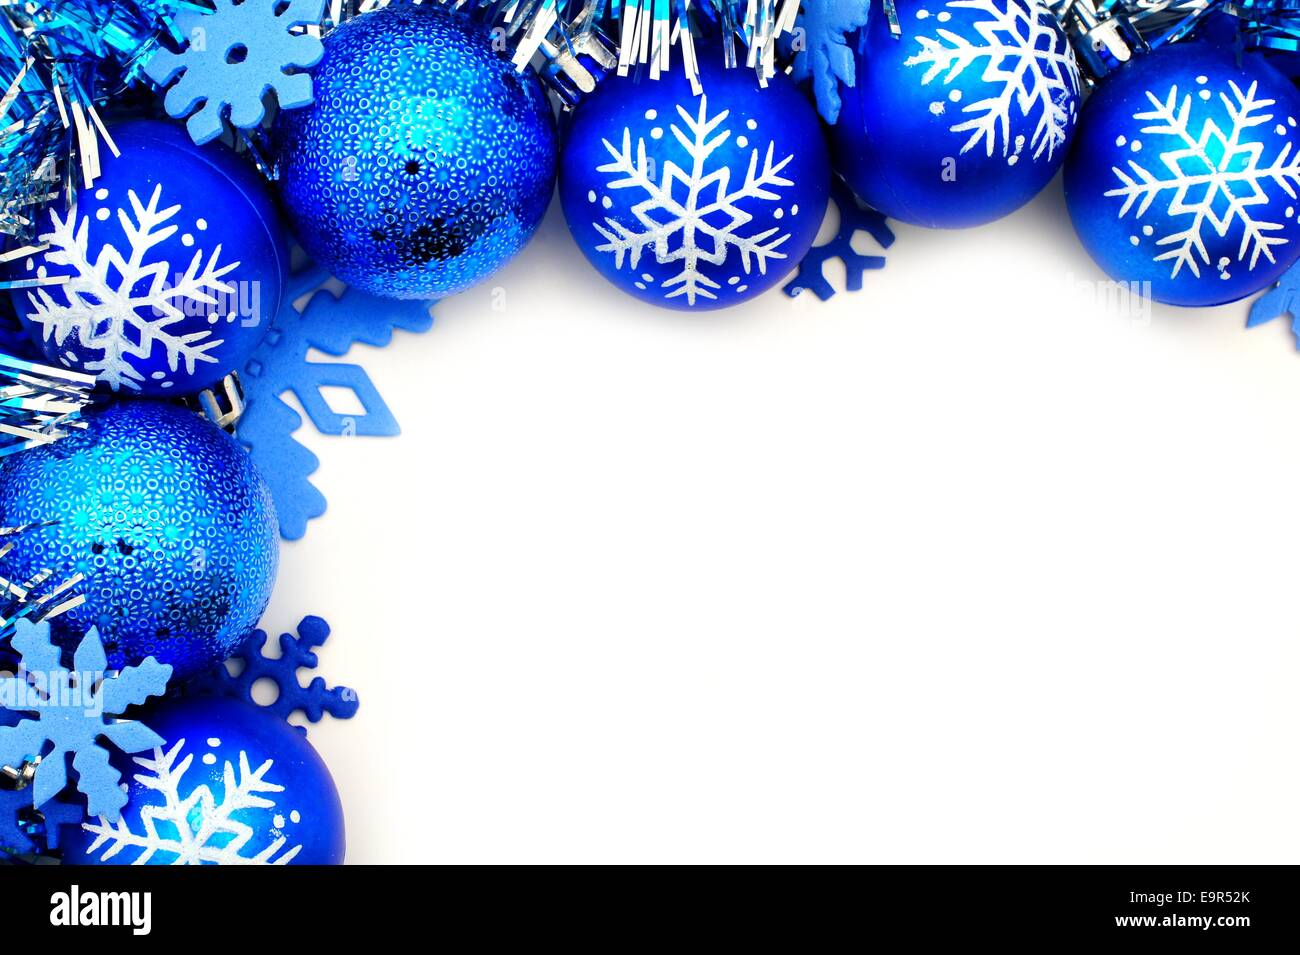 Blue Christmas corner border with baubles and snowflakes Stock Photo ...